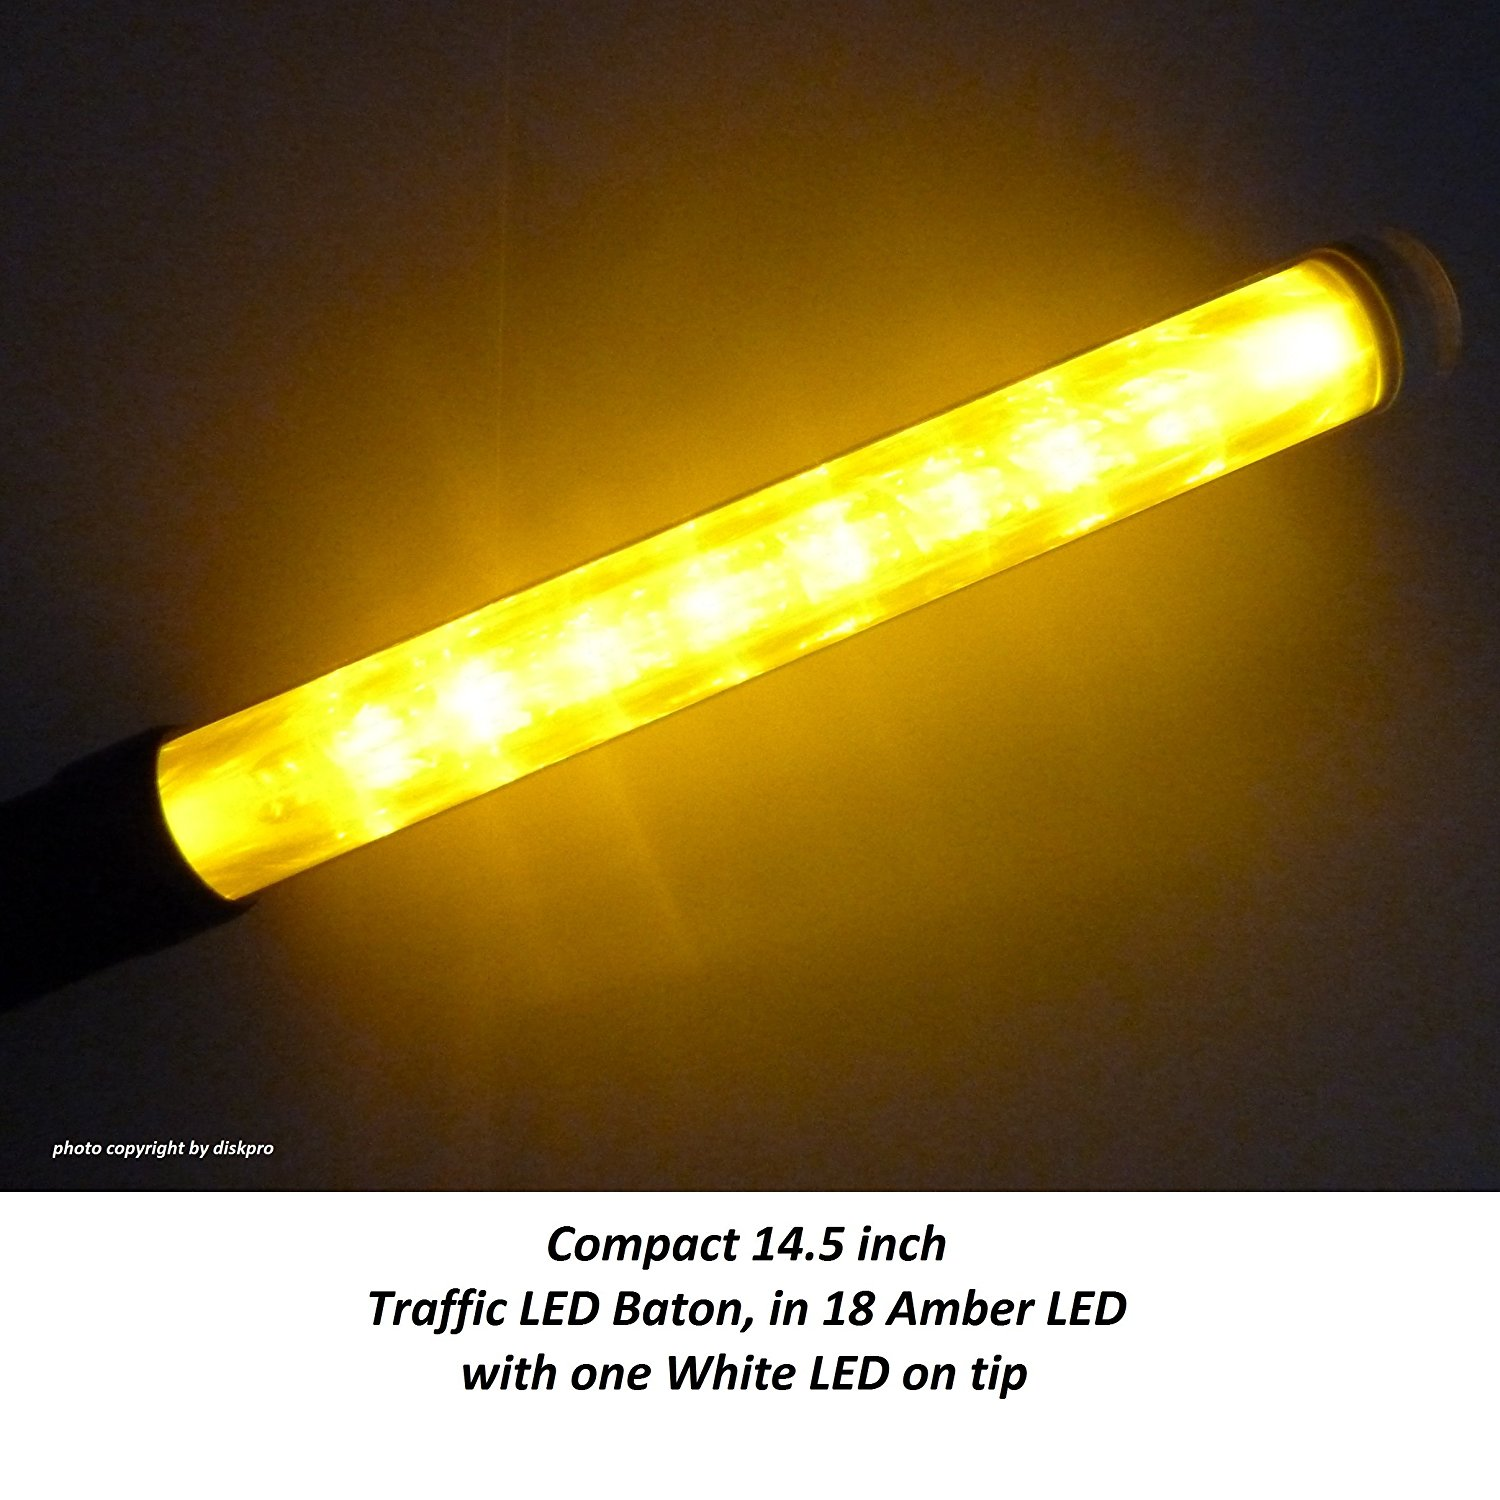 Wand Led Buy Imported By Diskpro 14 5 Inch Amber Led Traffic Safety Wand